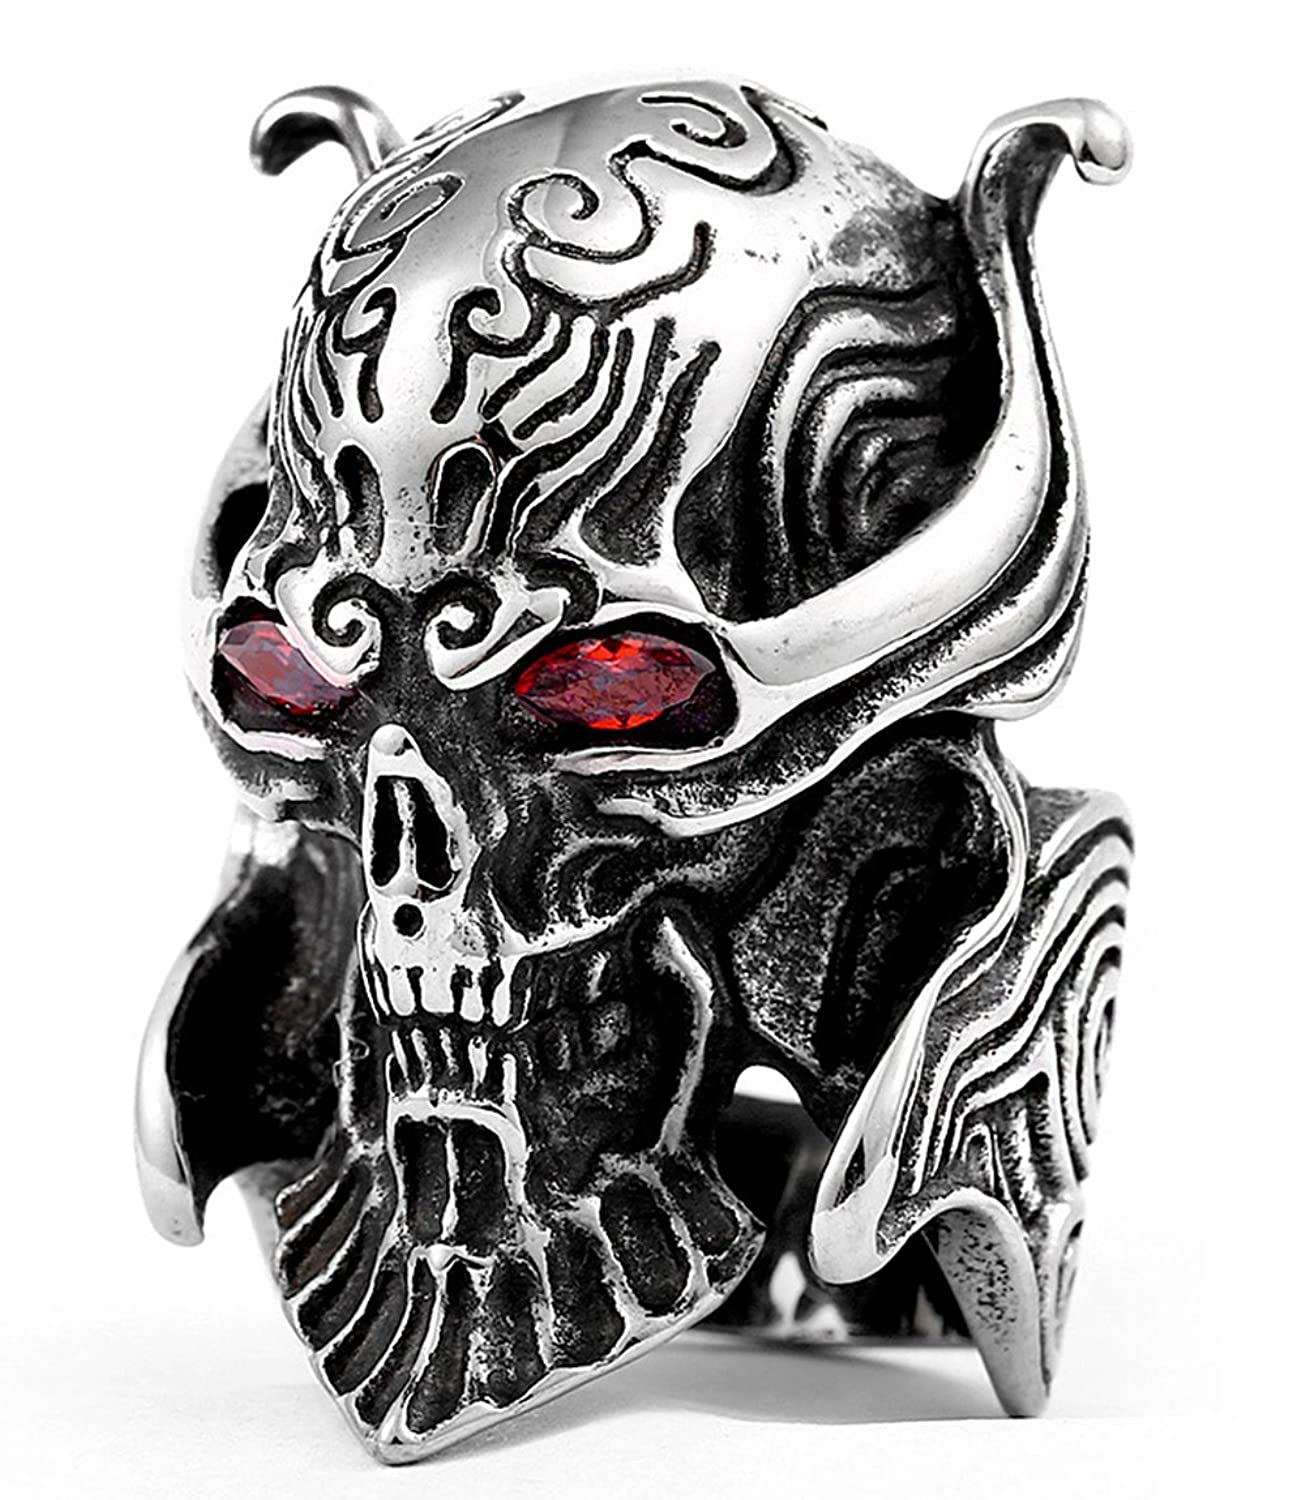 LILILEO Jewelry Stainless Steel Ring Silver Tone Black Devil Red Stone Eyes Skull Engraved Casted For Men's Rings